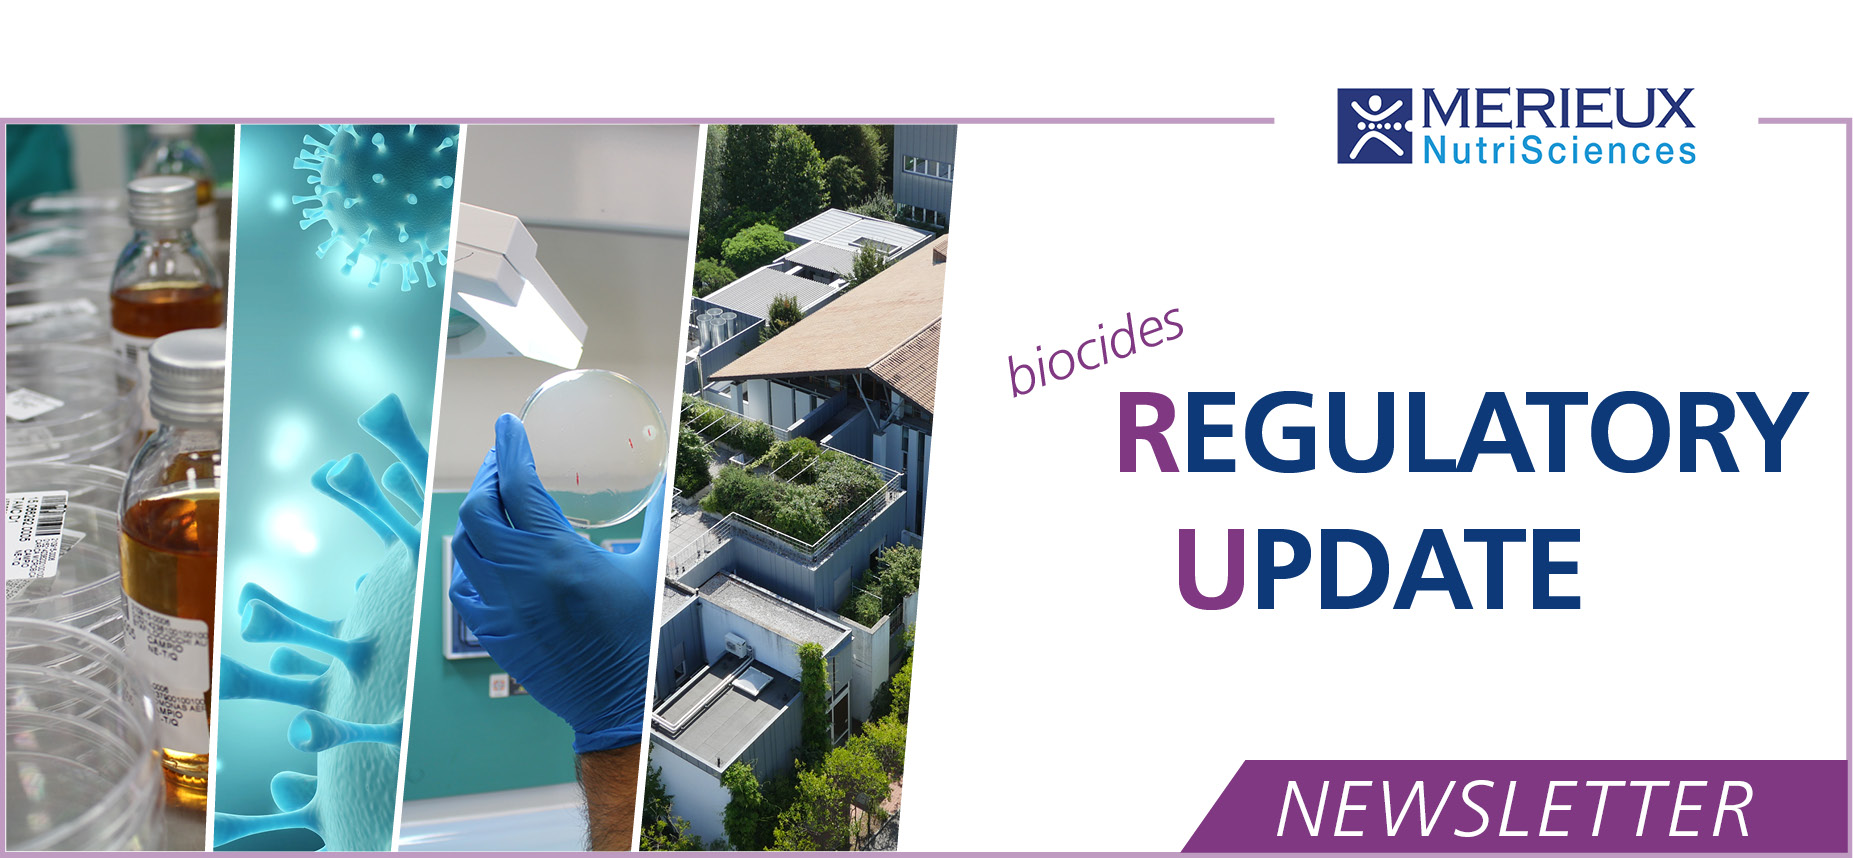 Mérieux NutriSciences - Regulatory Update - Newsletter - Biocides